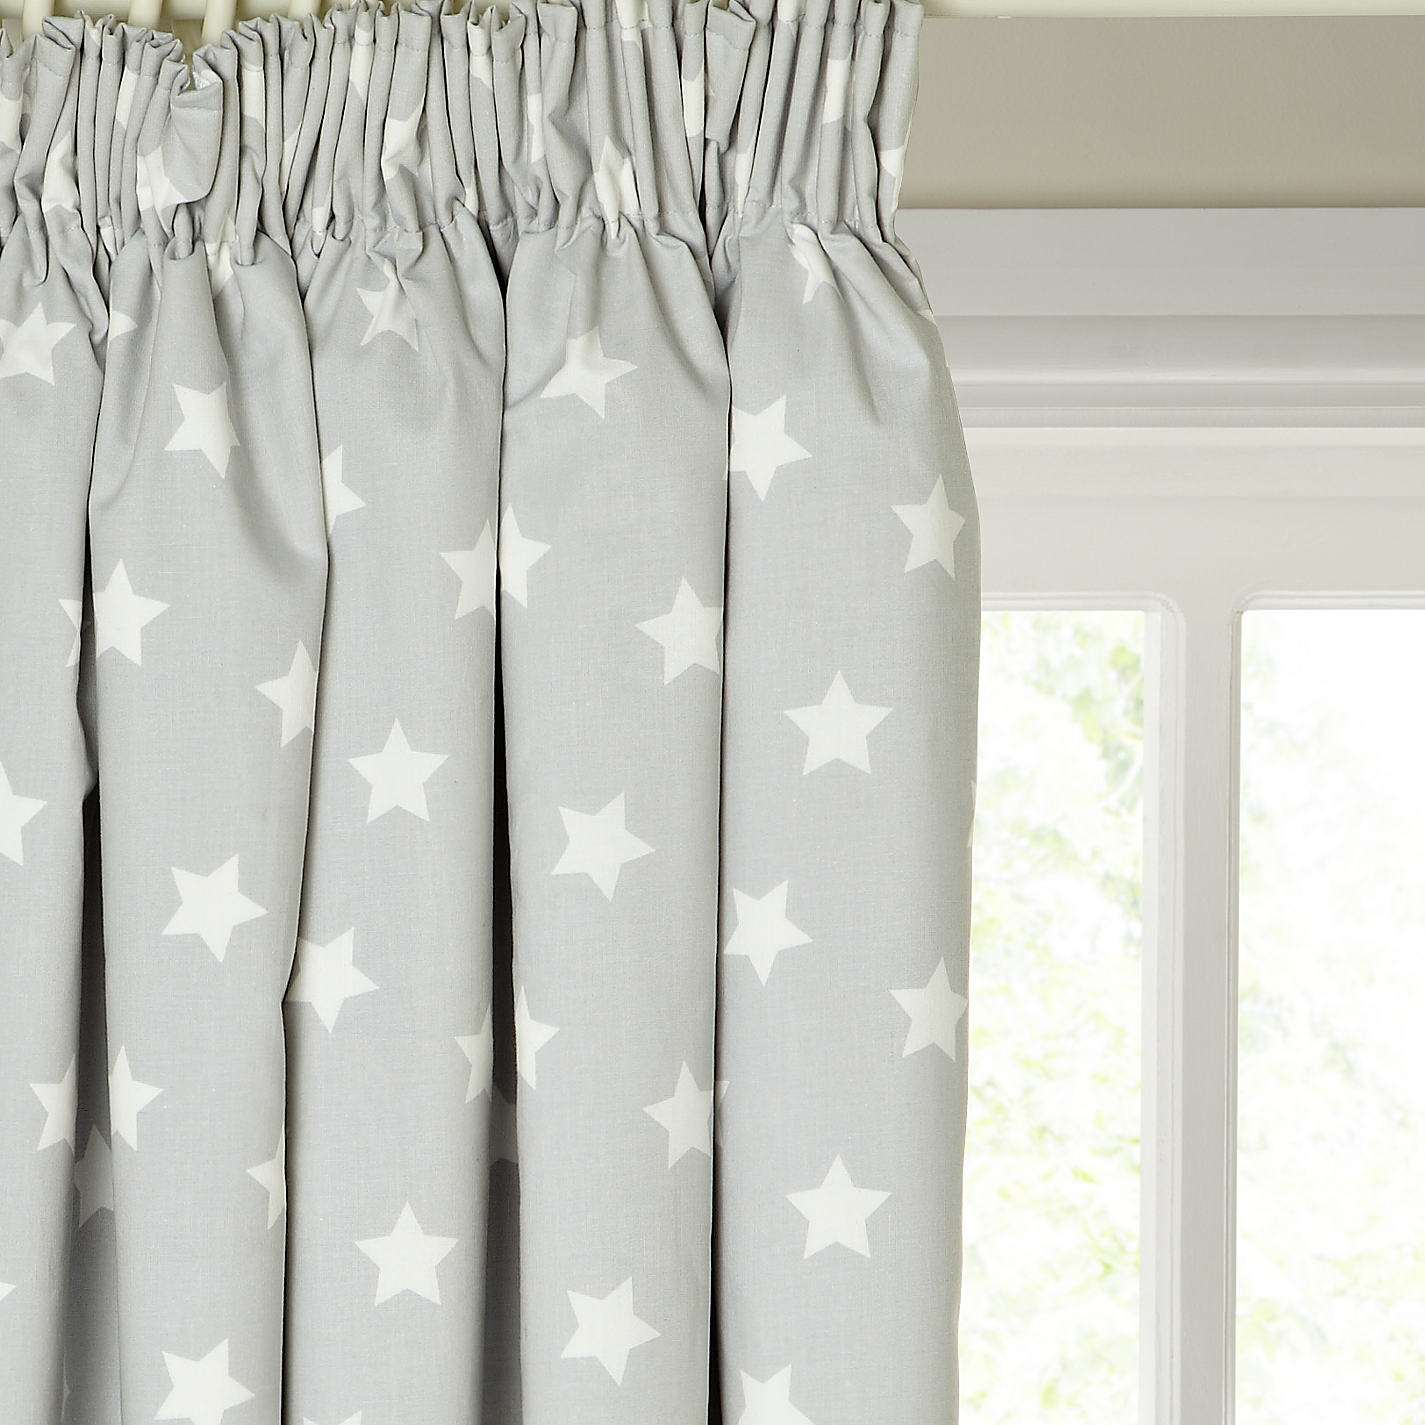 Buy Little Home At John Lewis Star Pencil Pleat Blackout Lined Childrenu0027s  Curtains Online At Johnlewis ...